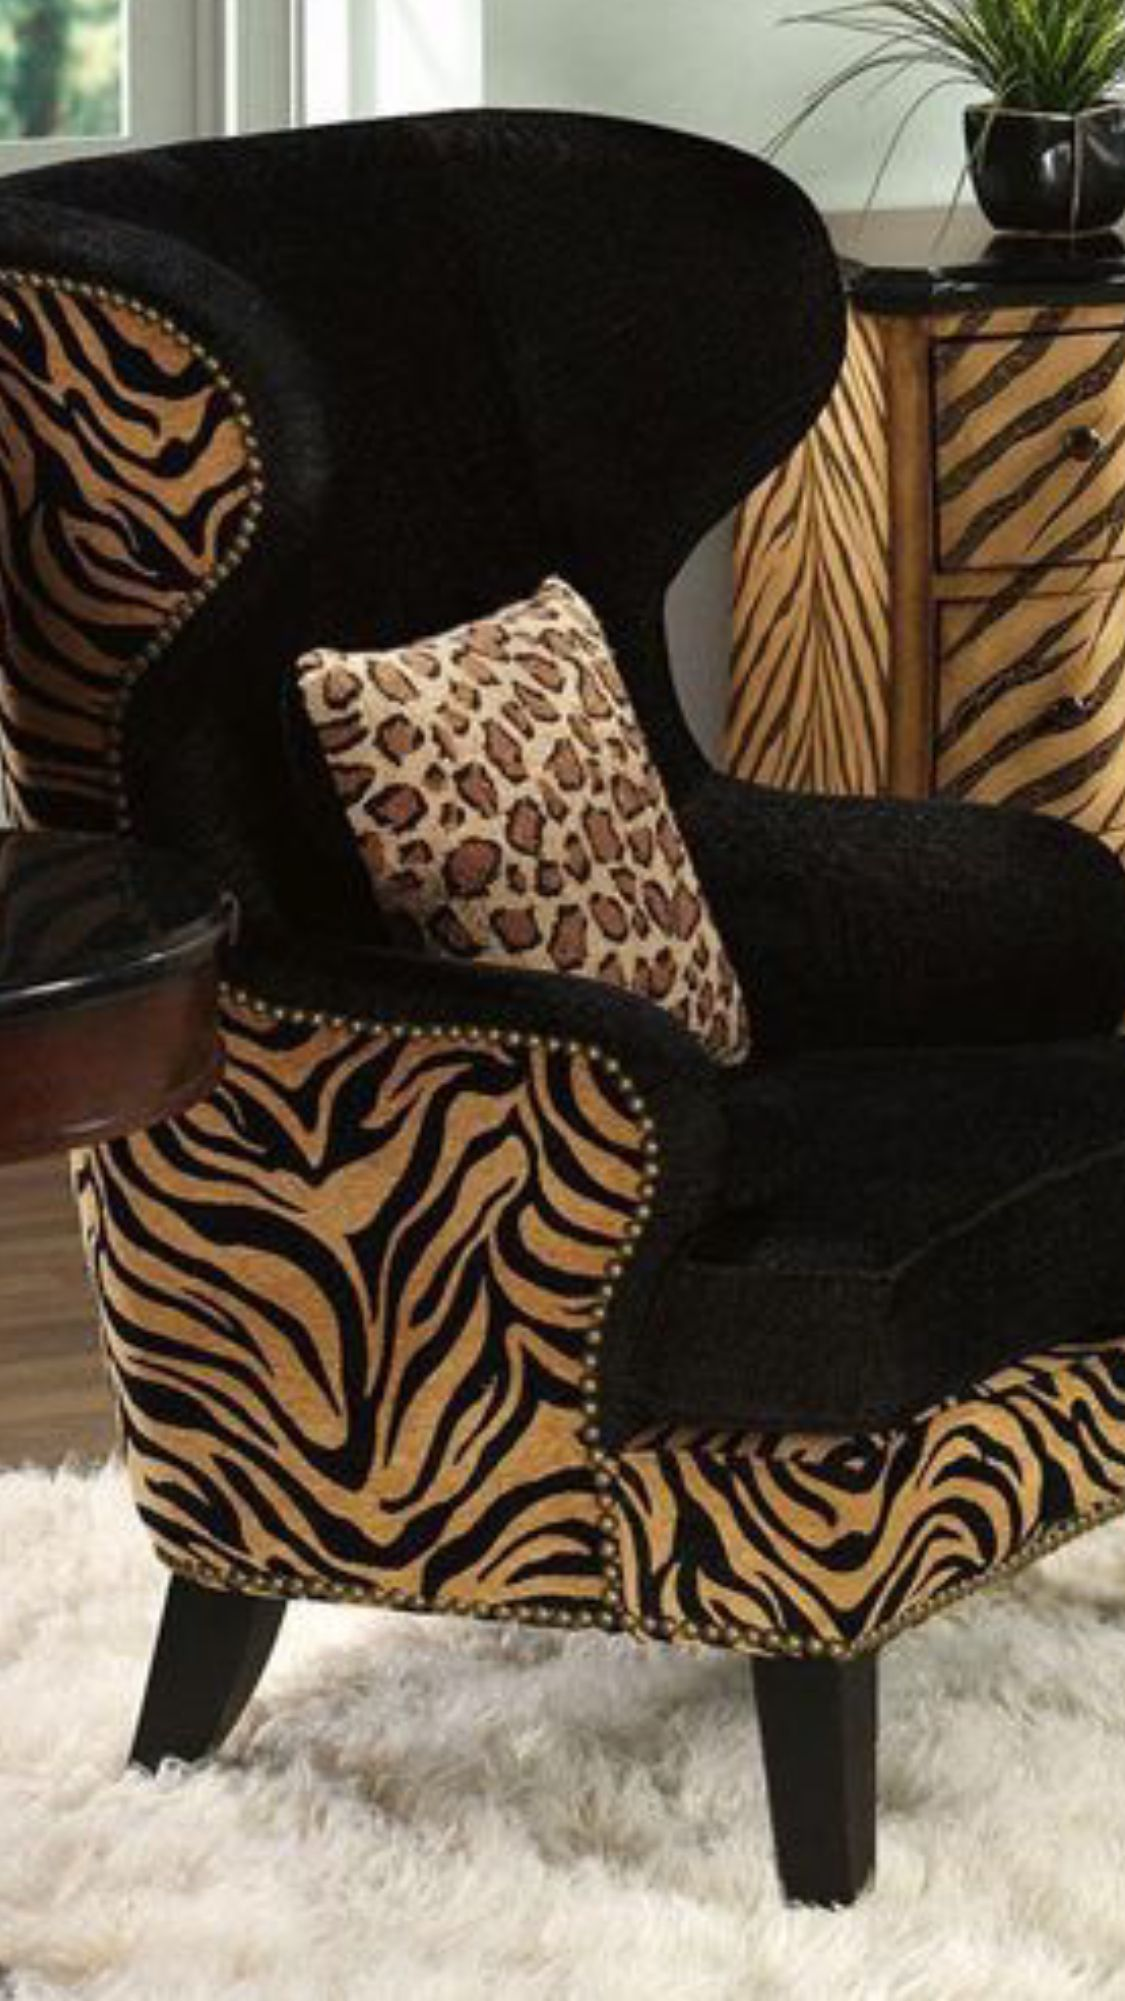 Different animal print choices together - Luxurydotcom | Fauteuils ...